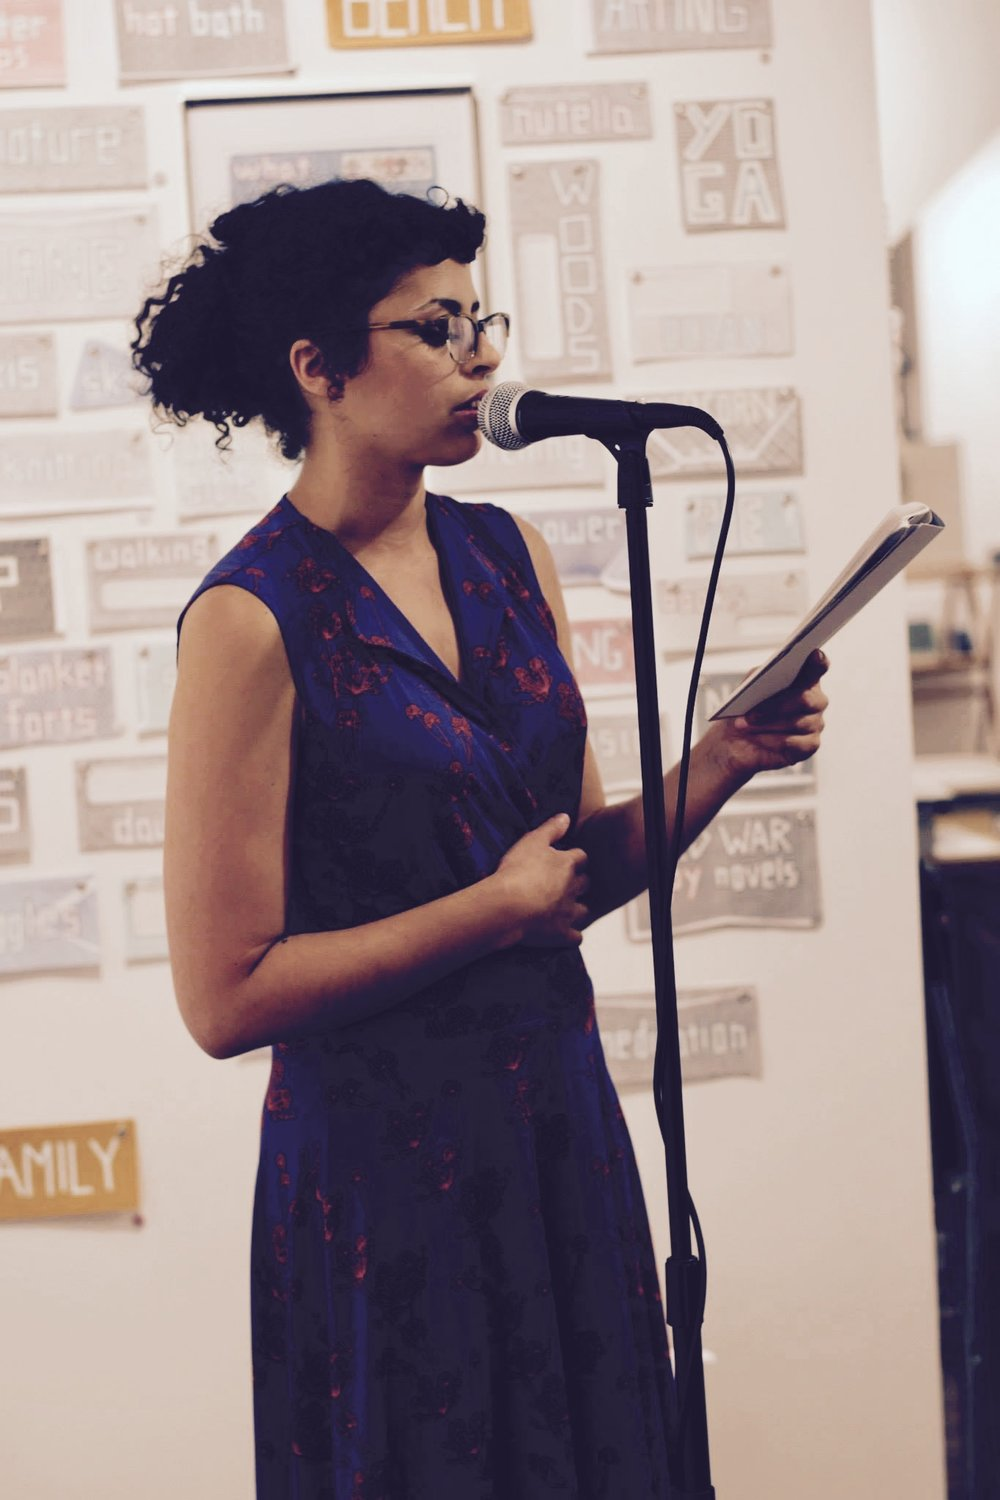 Maryan performing at the   Copy/Body   book release party at Paradigm Gallery. 6/17/2017